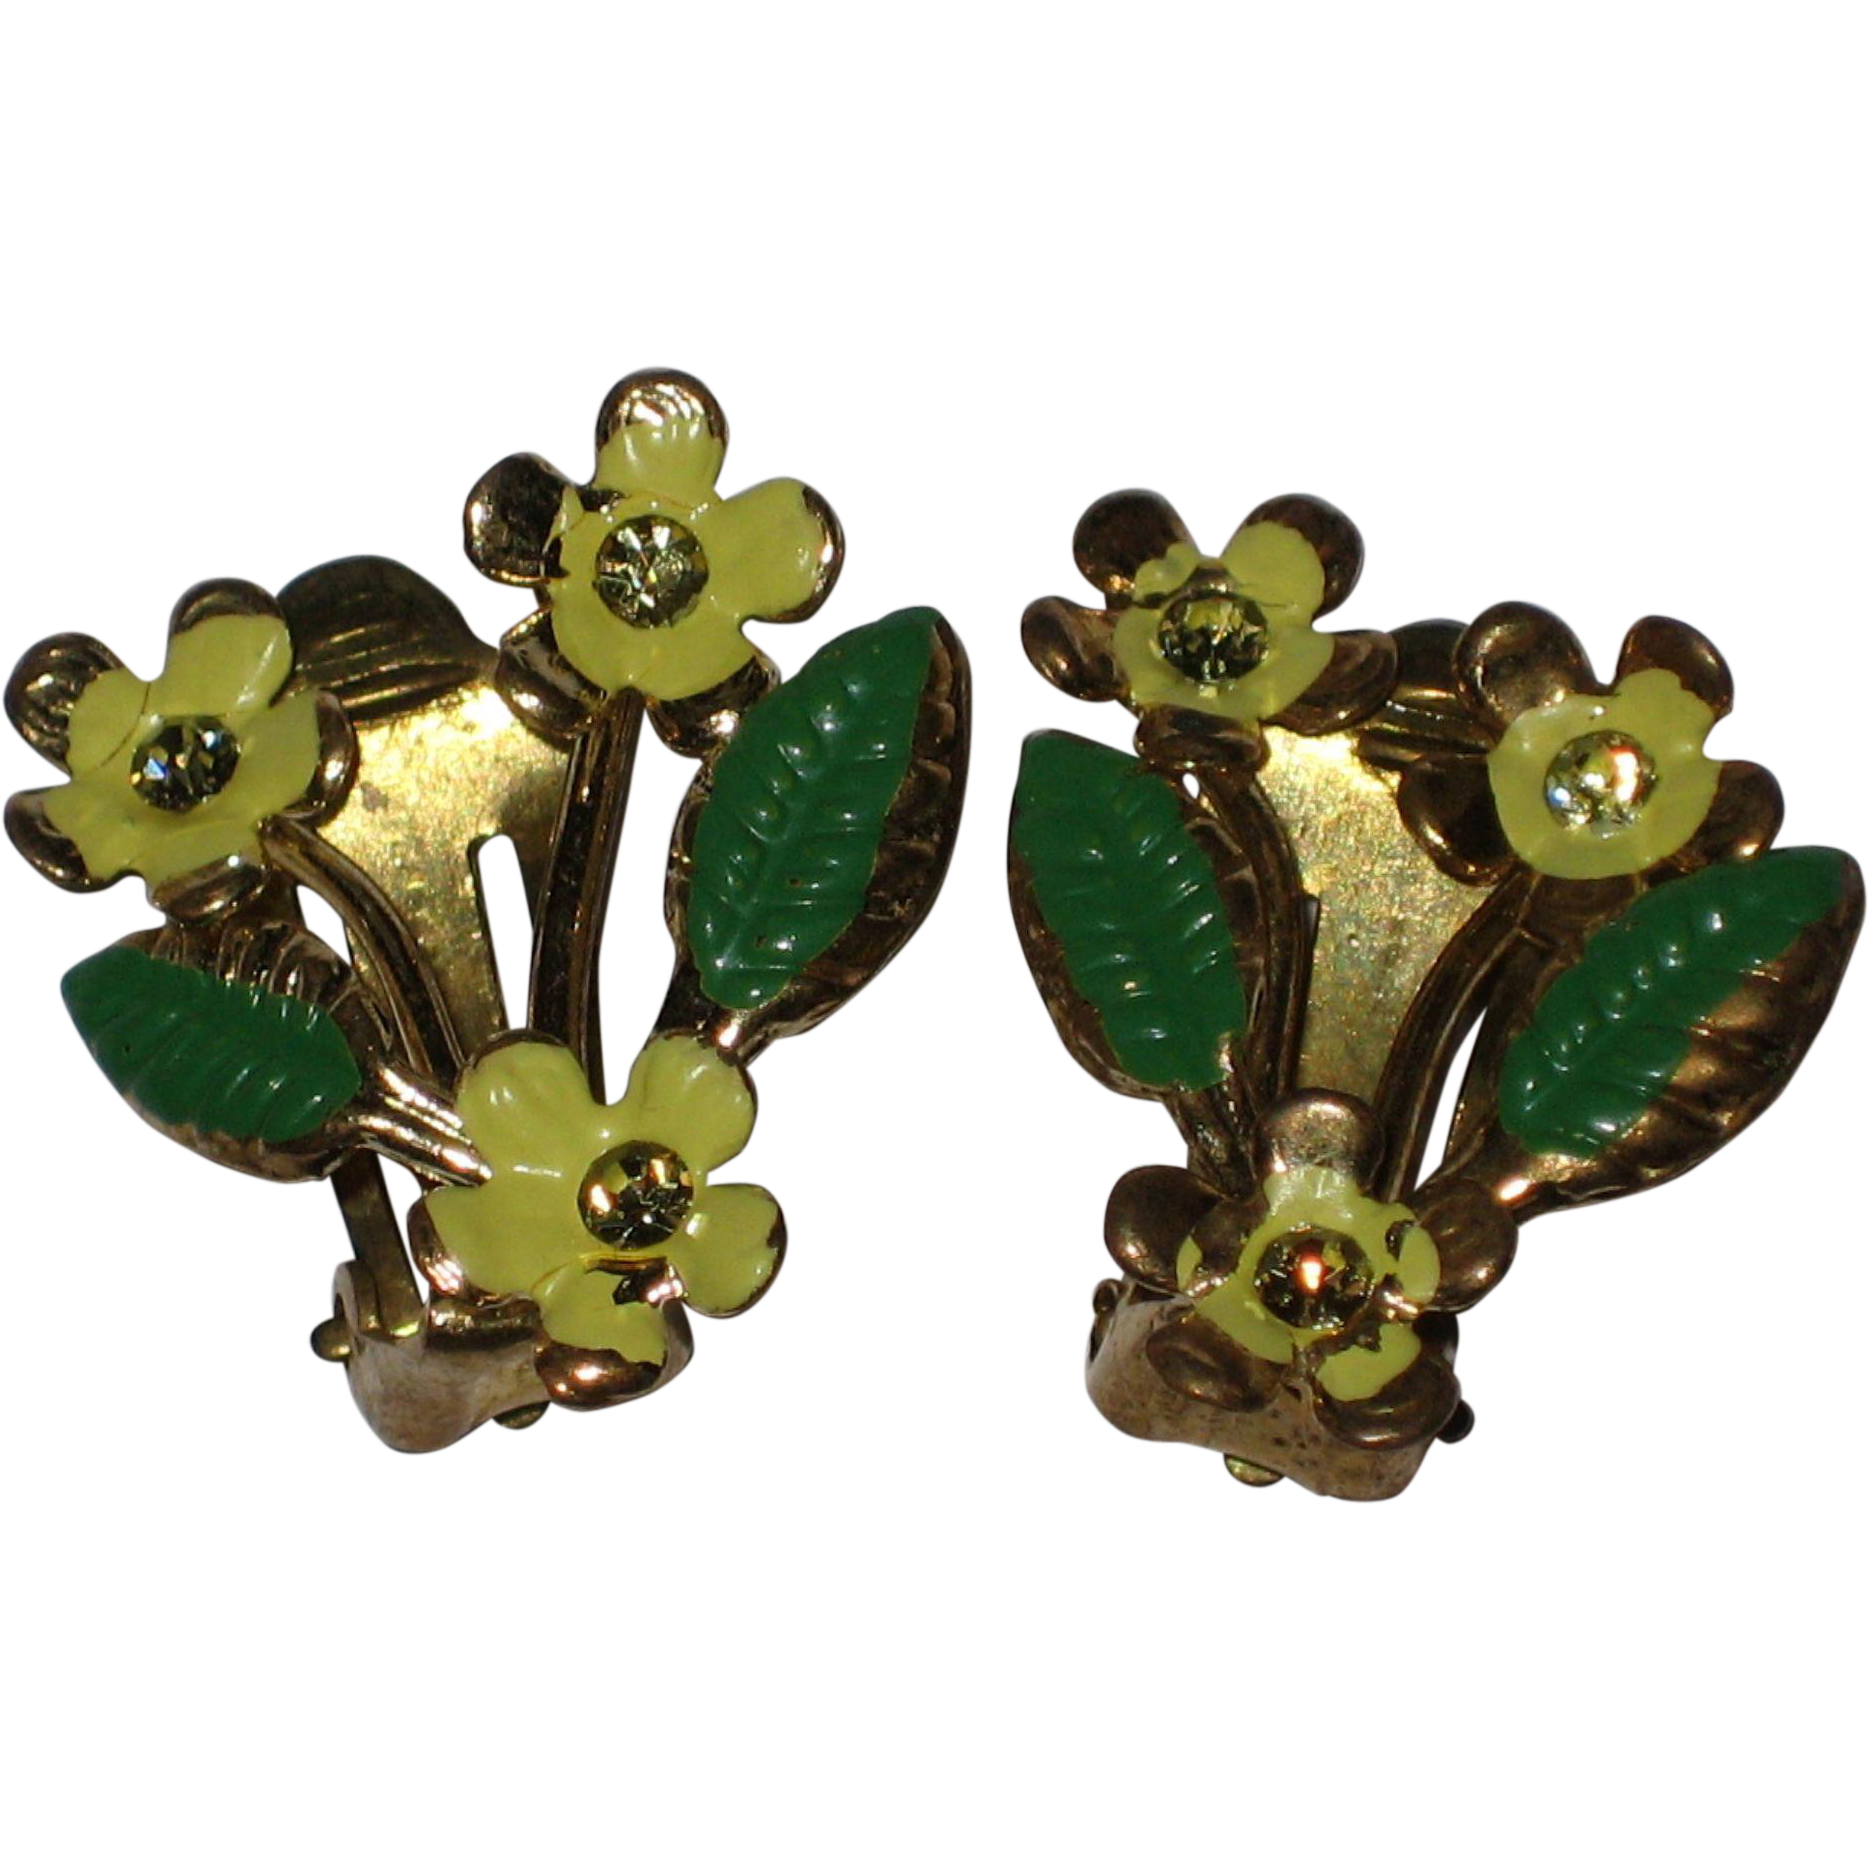 1940's Yellow Flower Clip Earrings with Rhinestone Centers - Austria